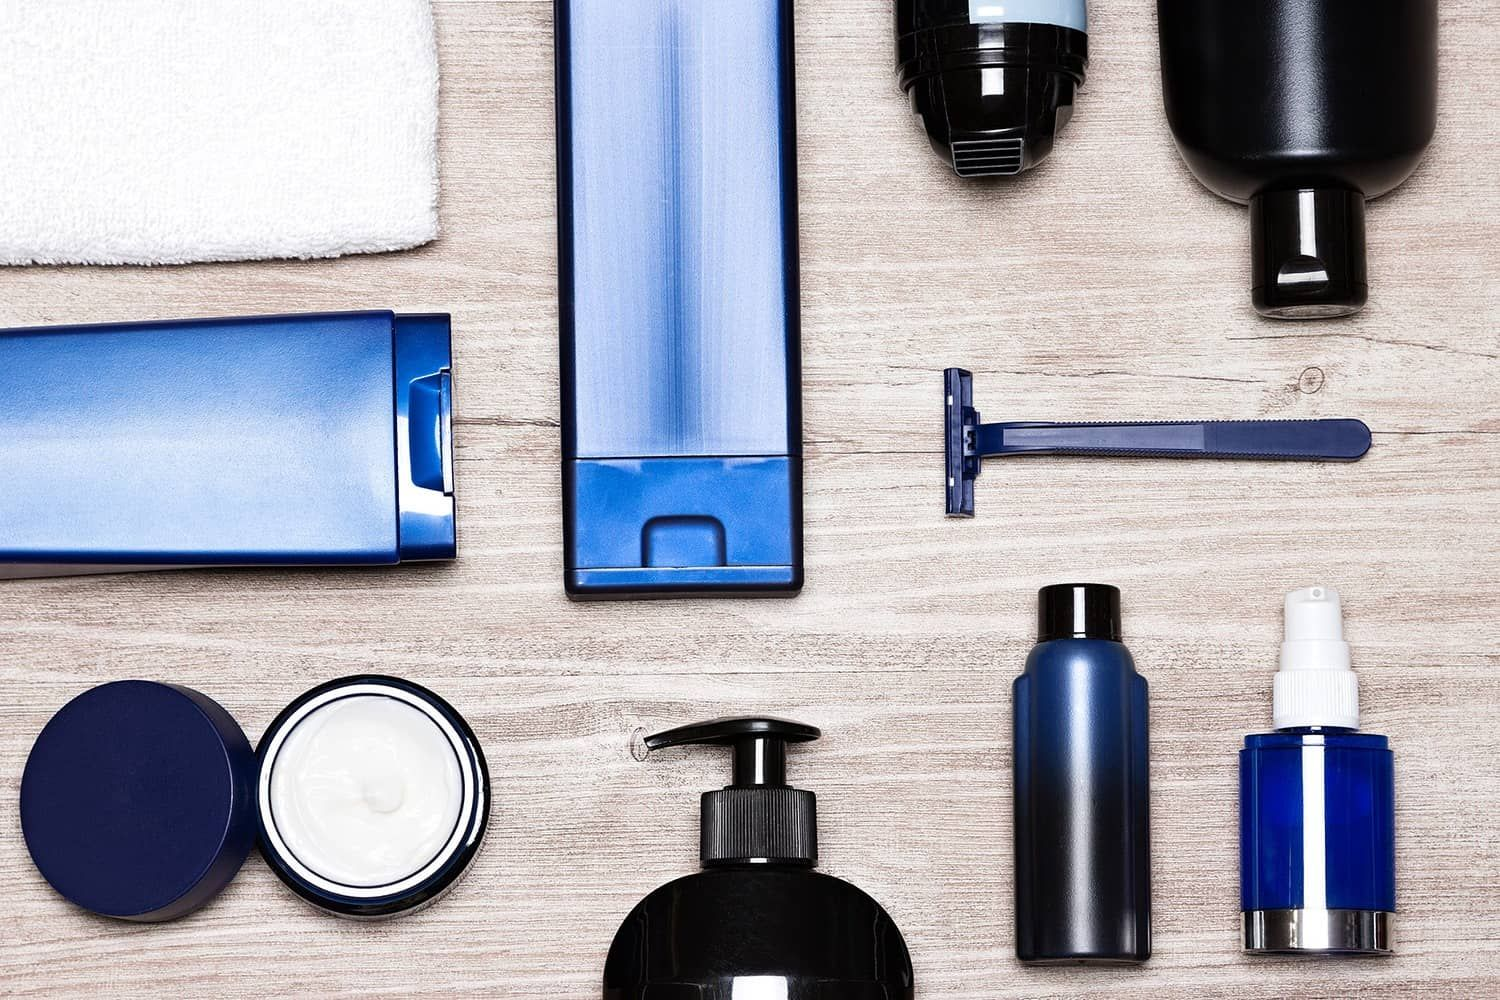 11 Best Men S Skin Care Products That Make A Difference 2020 In 2020 Daily Skin Care Routine Best Skincare Products Skin Care